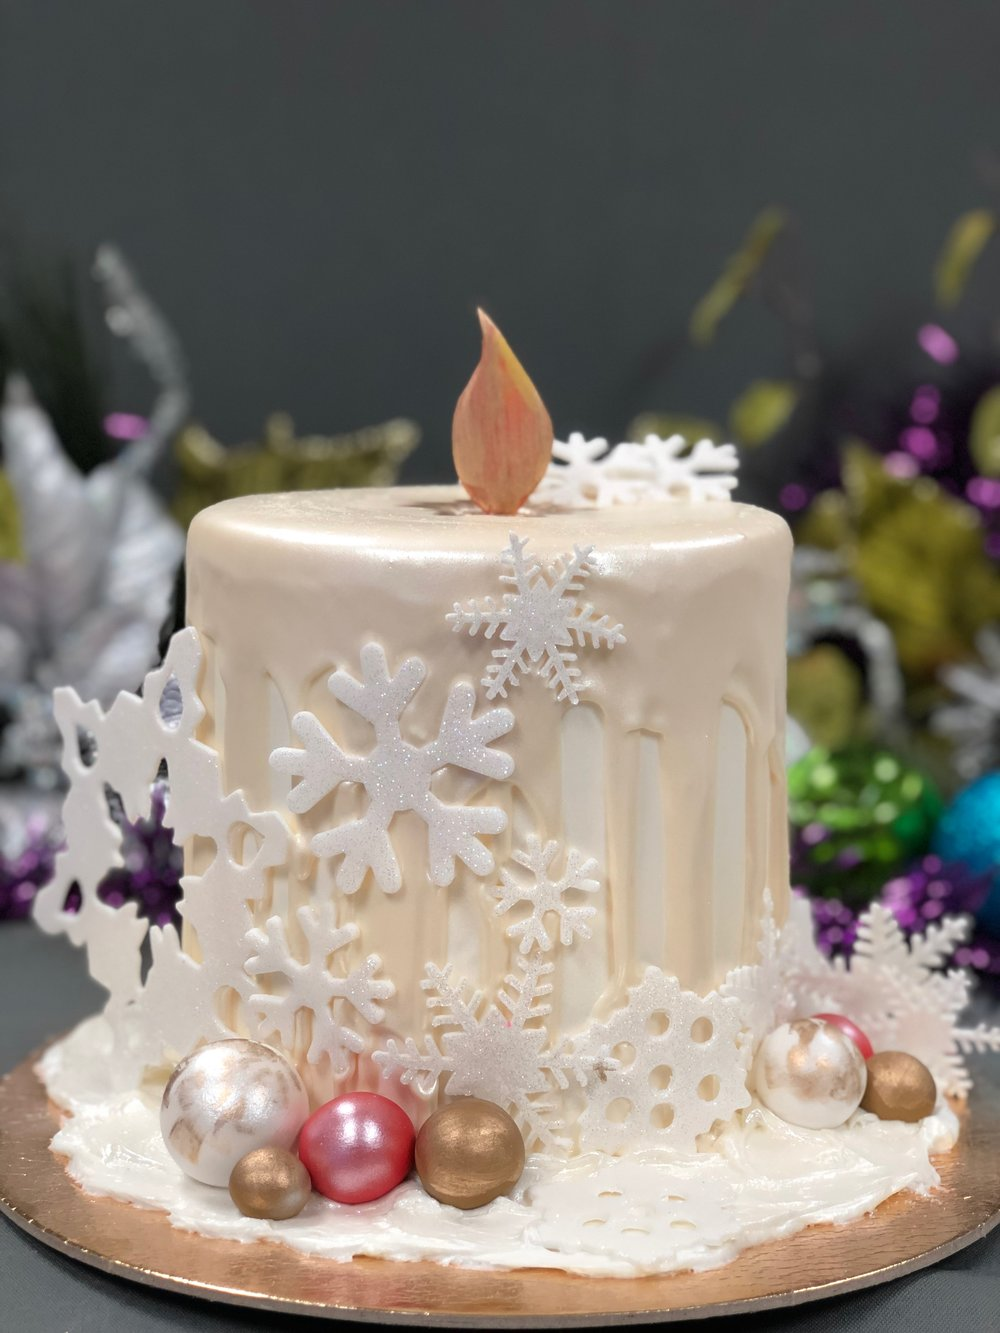 Christmas Candle Cake New Jersey